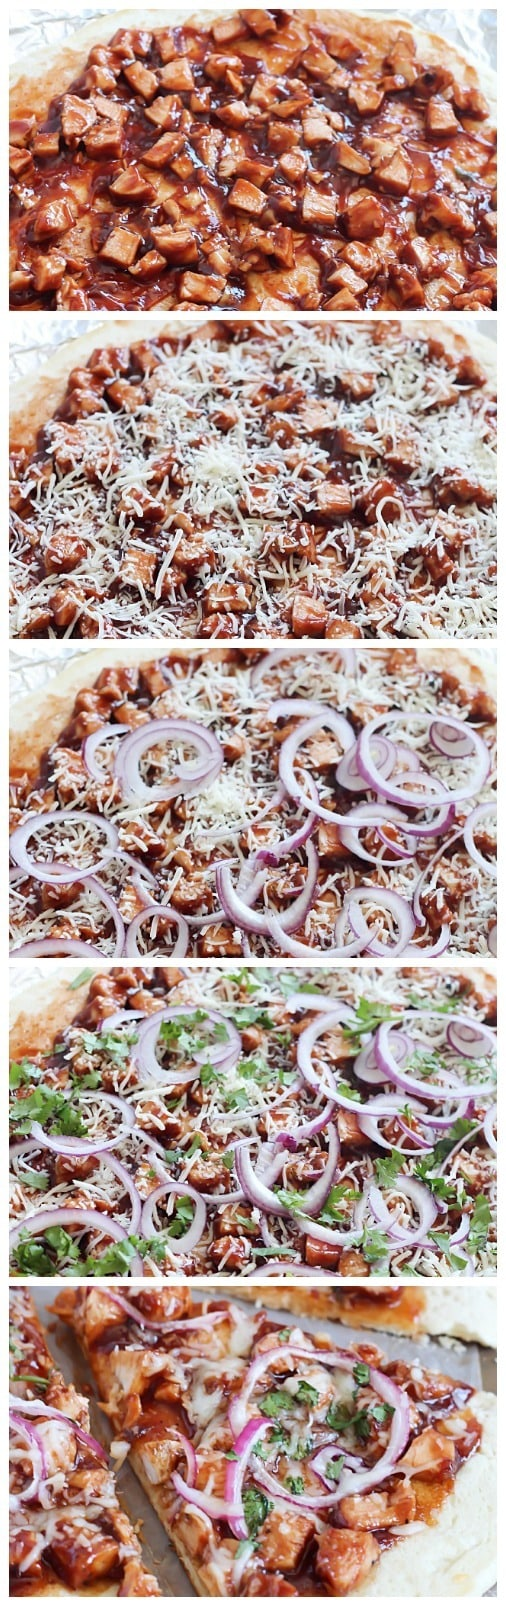 recipe: bbq chicken pizza recipe bobby flay [38]